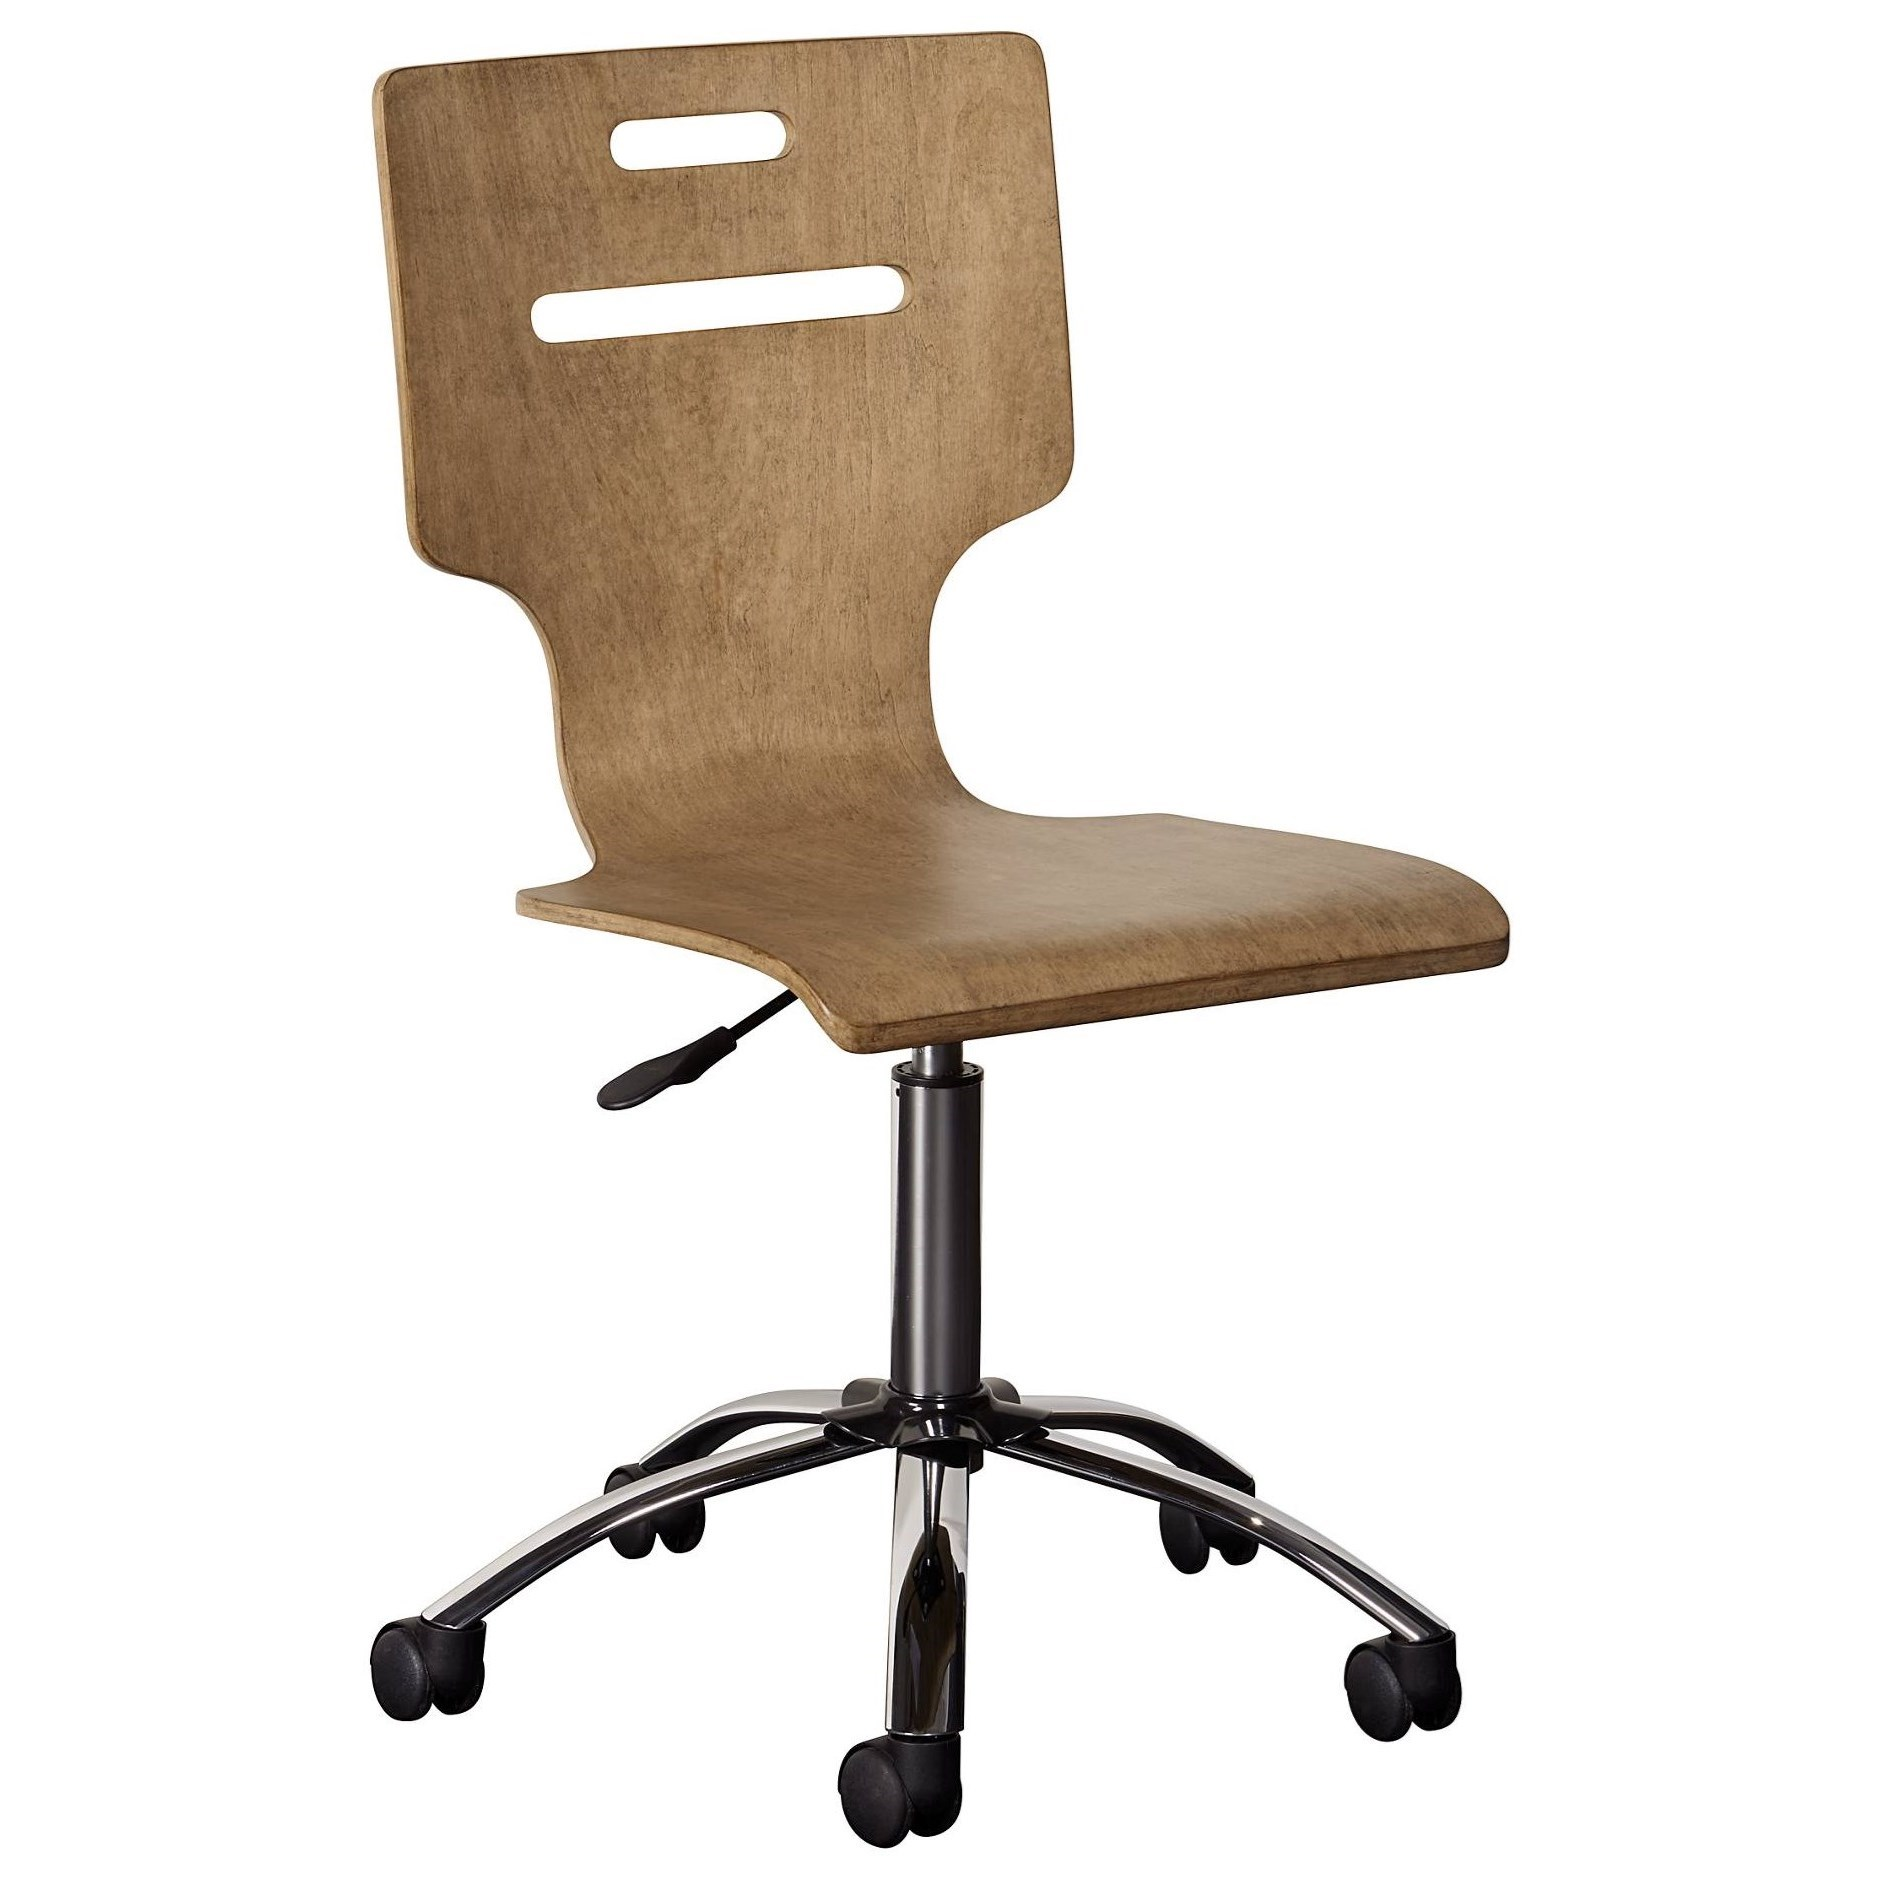 Stone & Leigh Furniture Chelsea Square Desk Chair - Item Number: 584-63-71